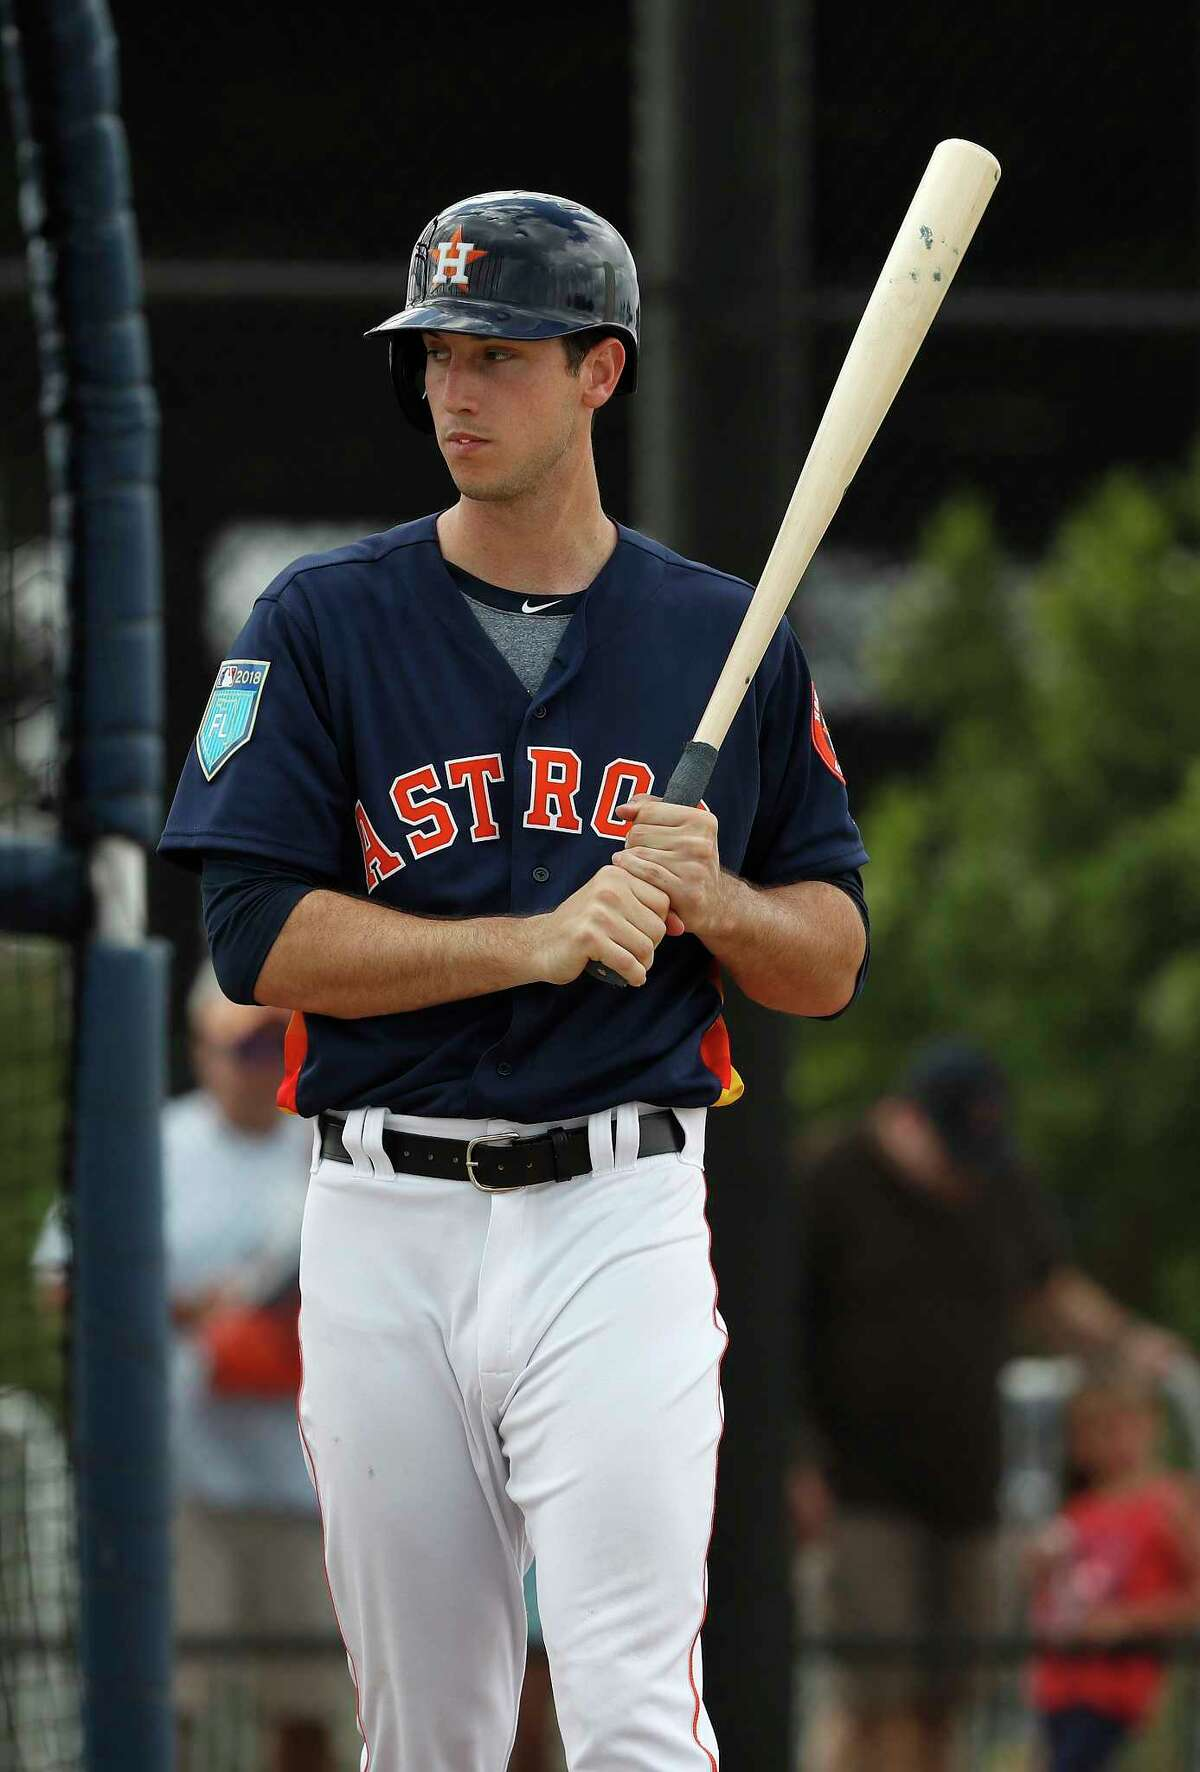 Kyle Tucker is hitting .385 with three homers and eight RBIs in 13 spring at-bats, but manager A.J. Hinch says the 21-year-old phenom has some strides to make in plate discipline.